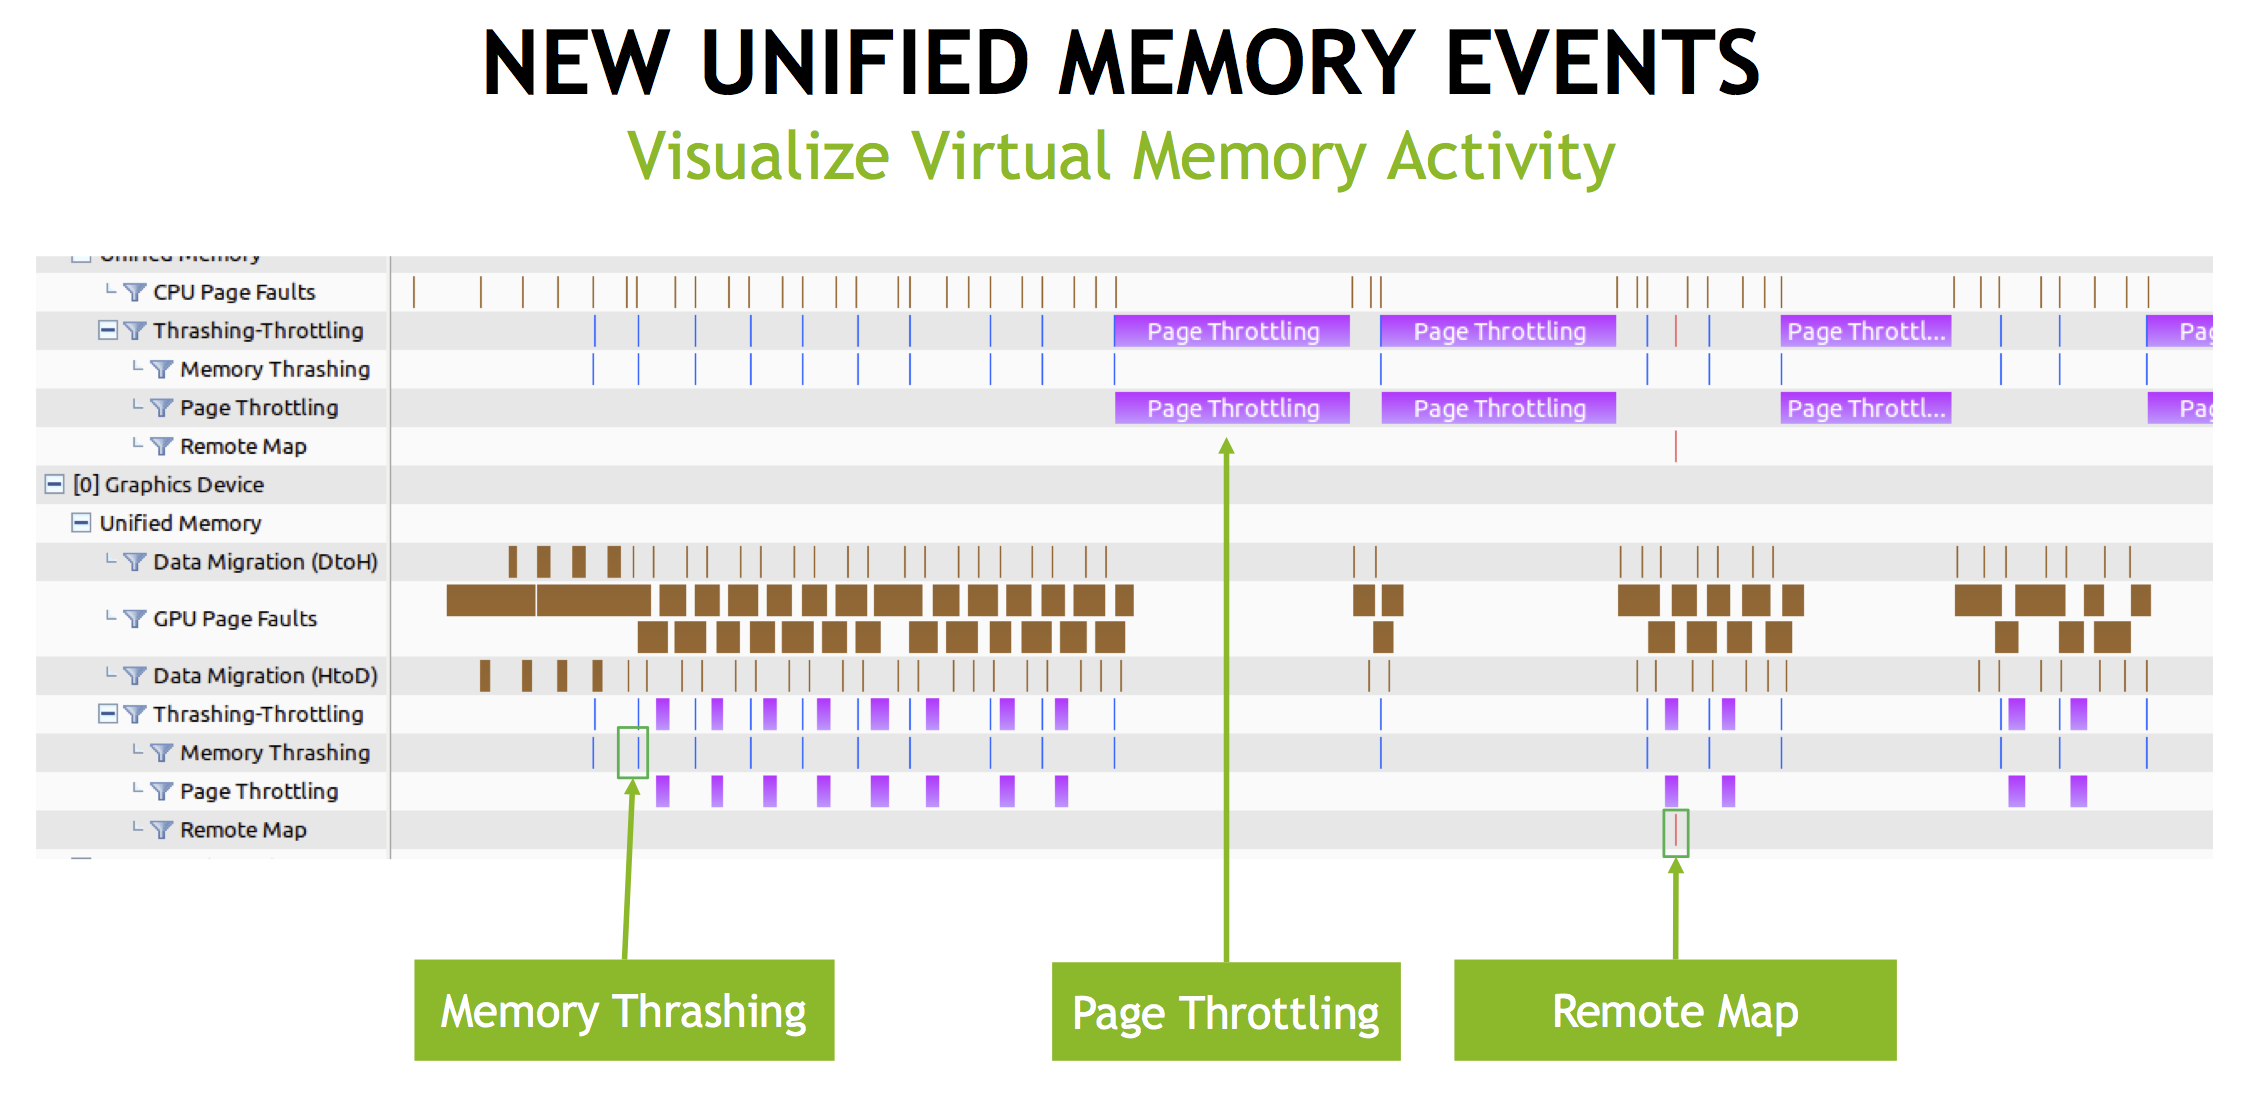 Figure 6: The NVIDIA Visual Profiler in CUDA 9 now includes time line events for memory thrashing, page throttling, and remote map of Unified Memory pages.